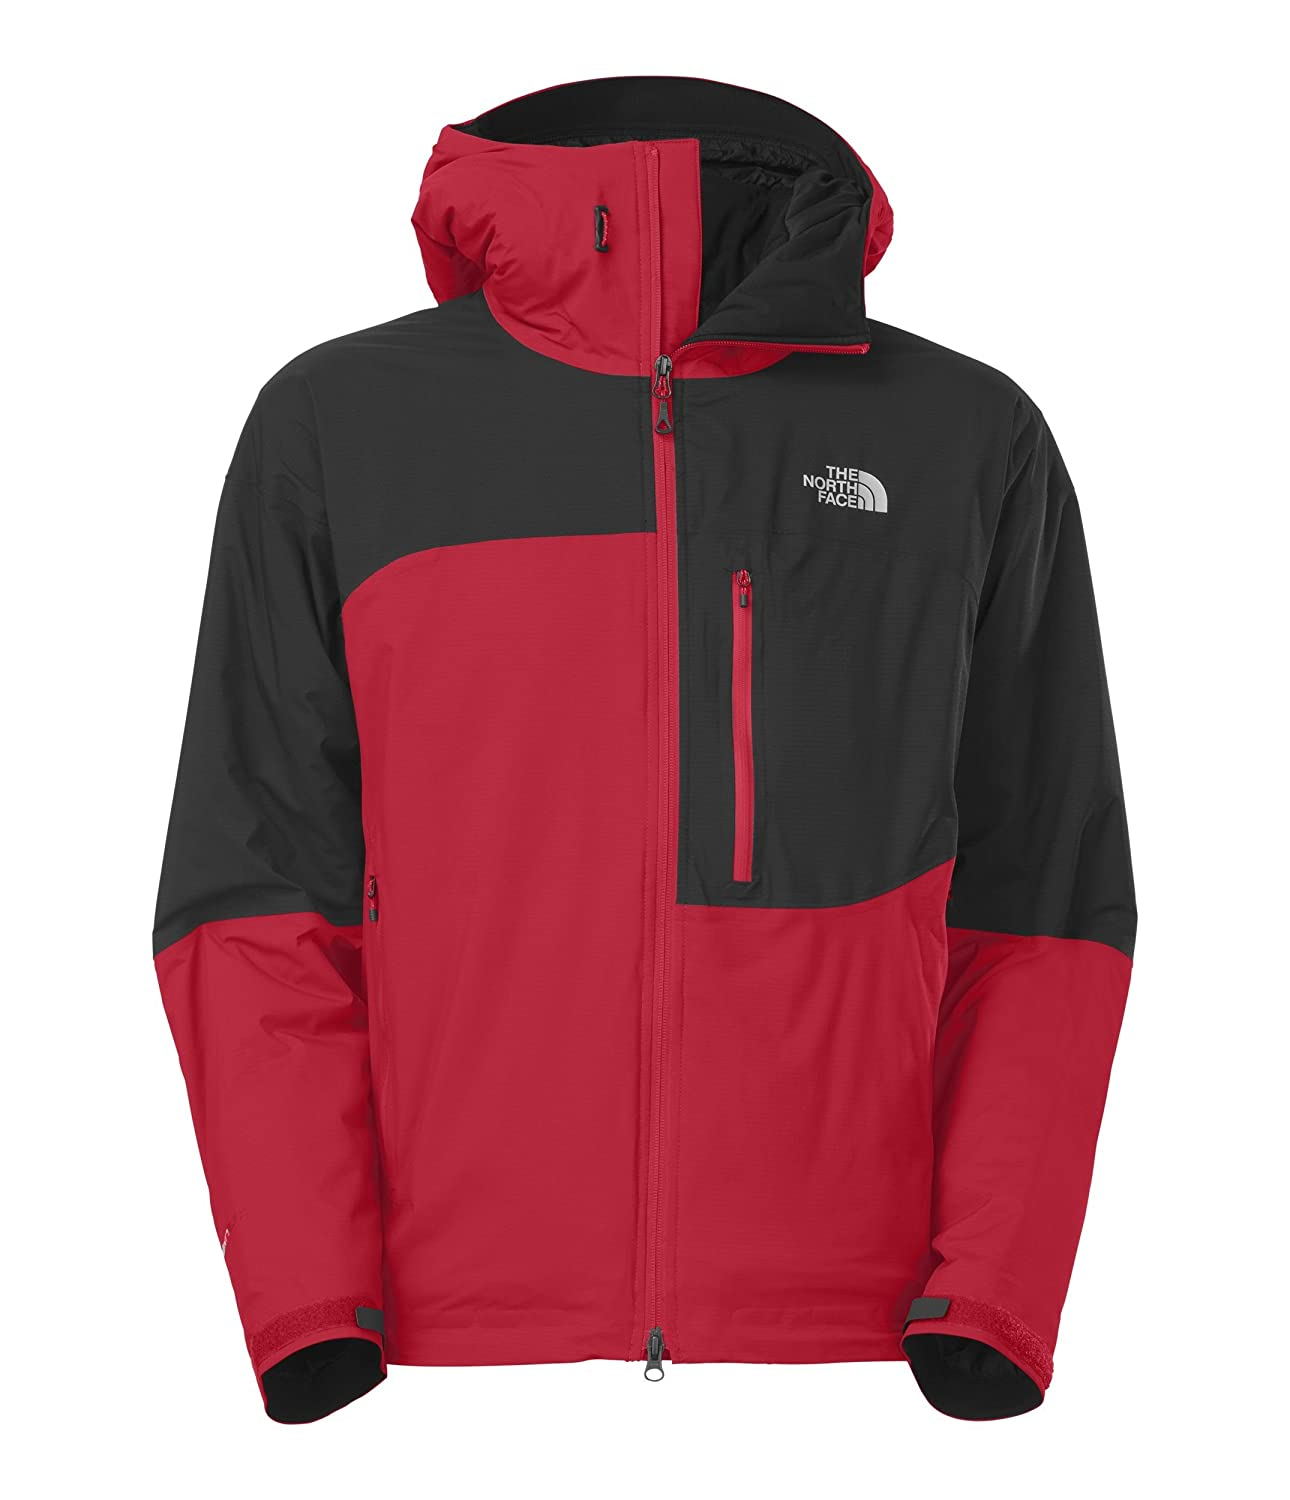 80ebe2c0e THE NORTH FACE Summit Series Mens Makalu Insulated Jacket LG Red ...